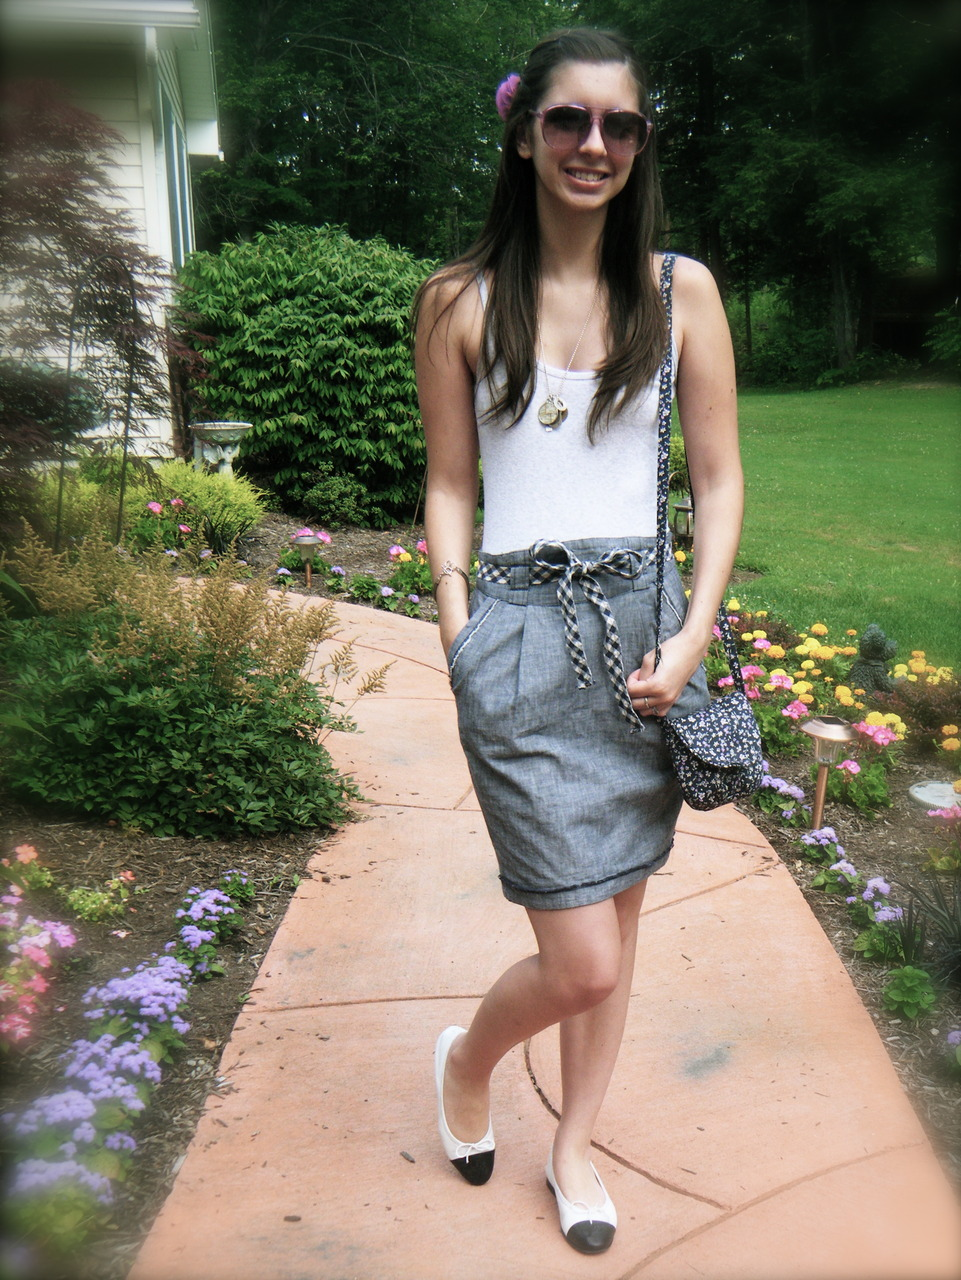 hair clip: JCrew sunglasses: H&M necklace: custom tank: Gap skirt: Anthropologie purse: H&M shoes: Chanel